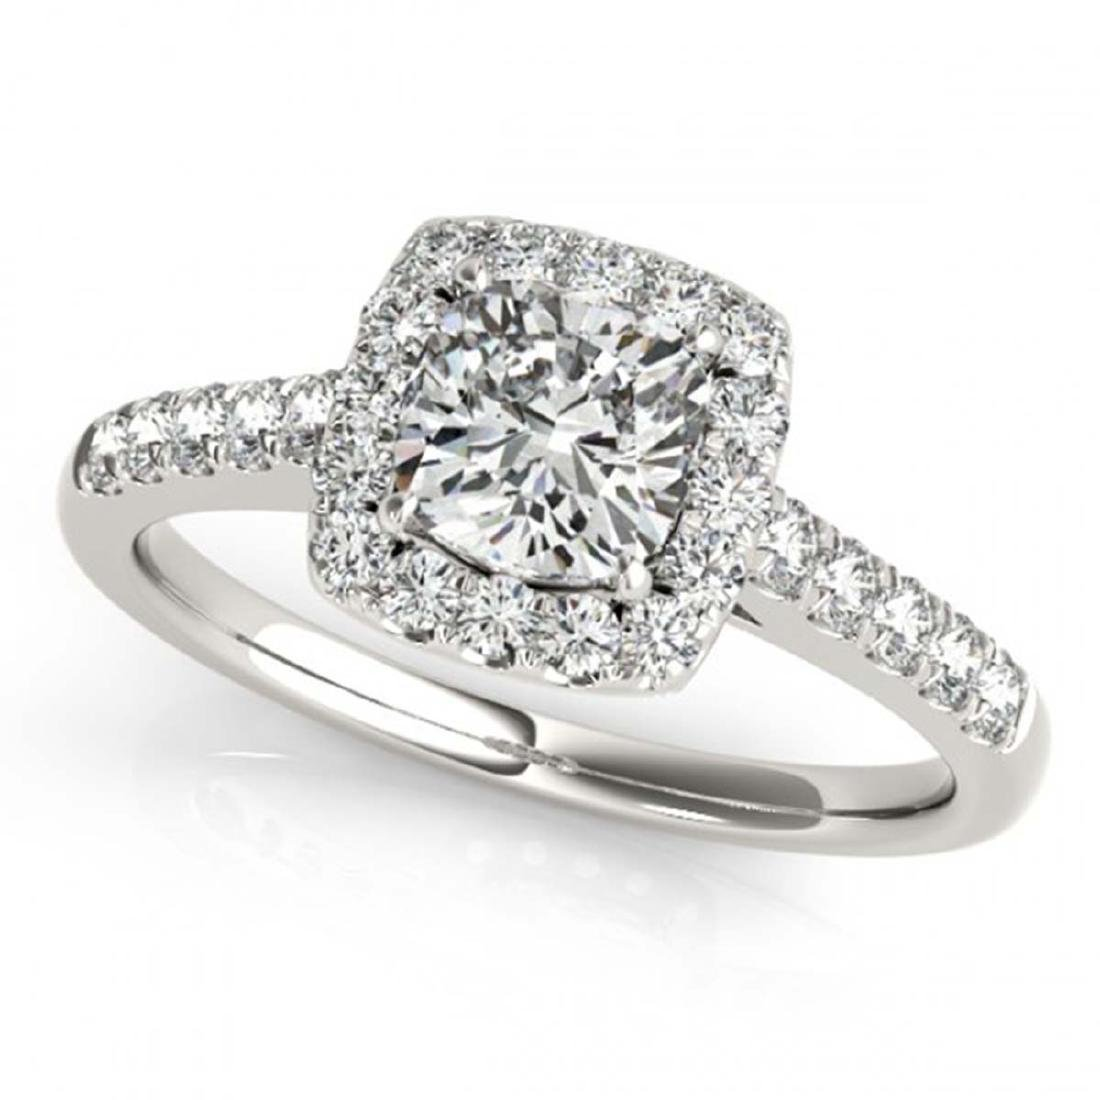 1.45 CTW VS/SI Cushion Diamond Solitaire Halo Ring 14K